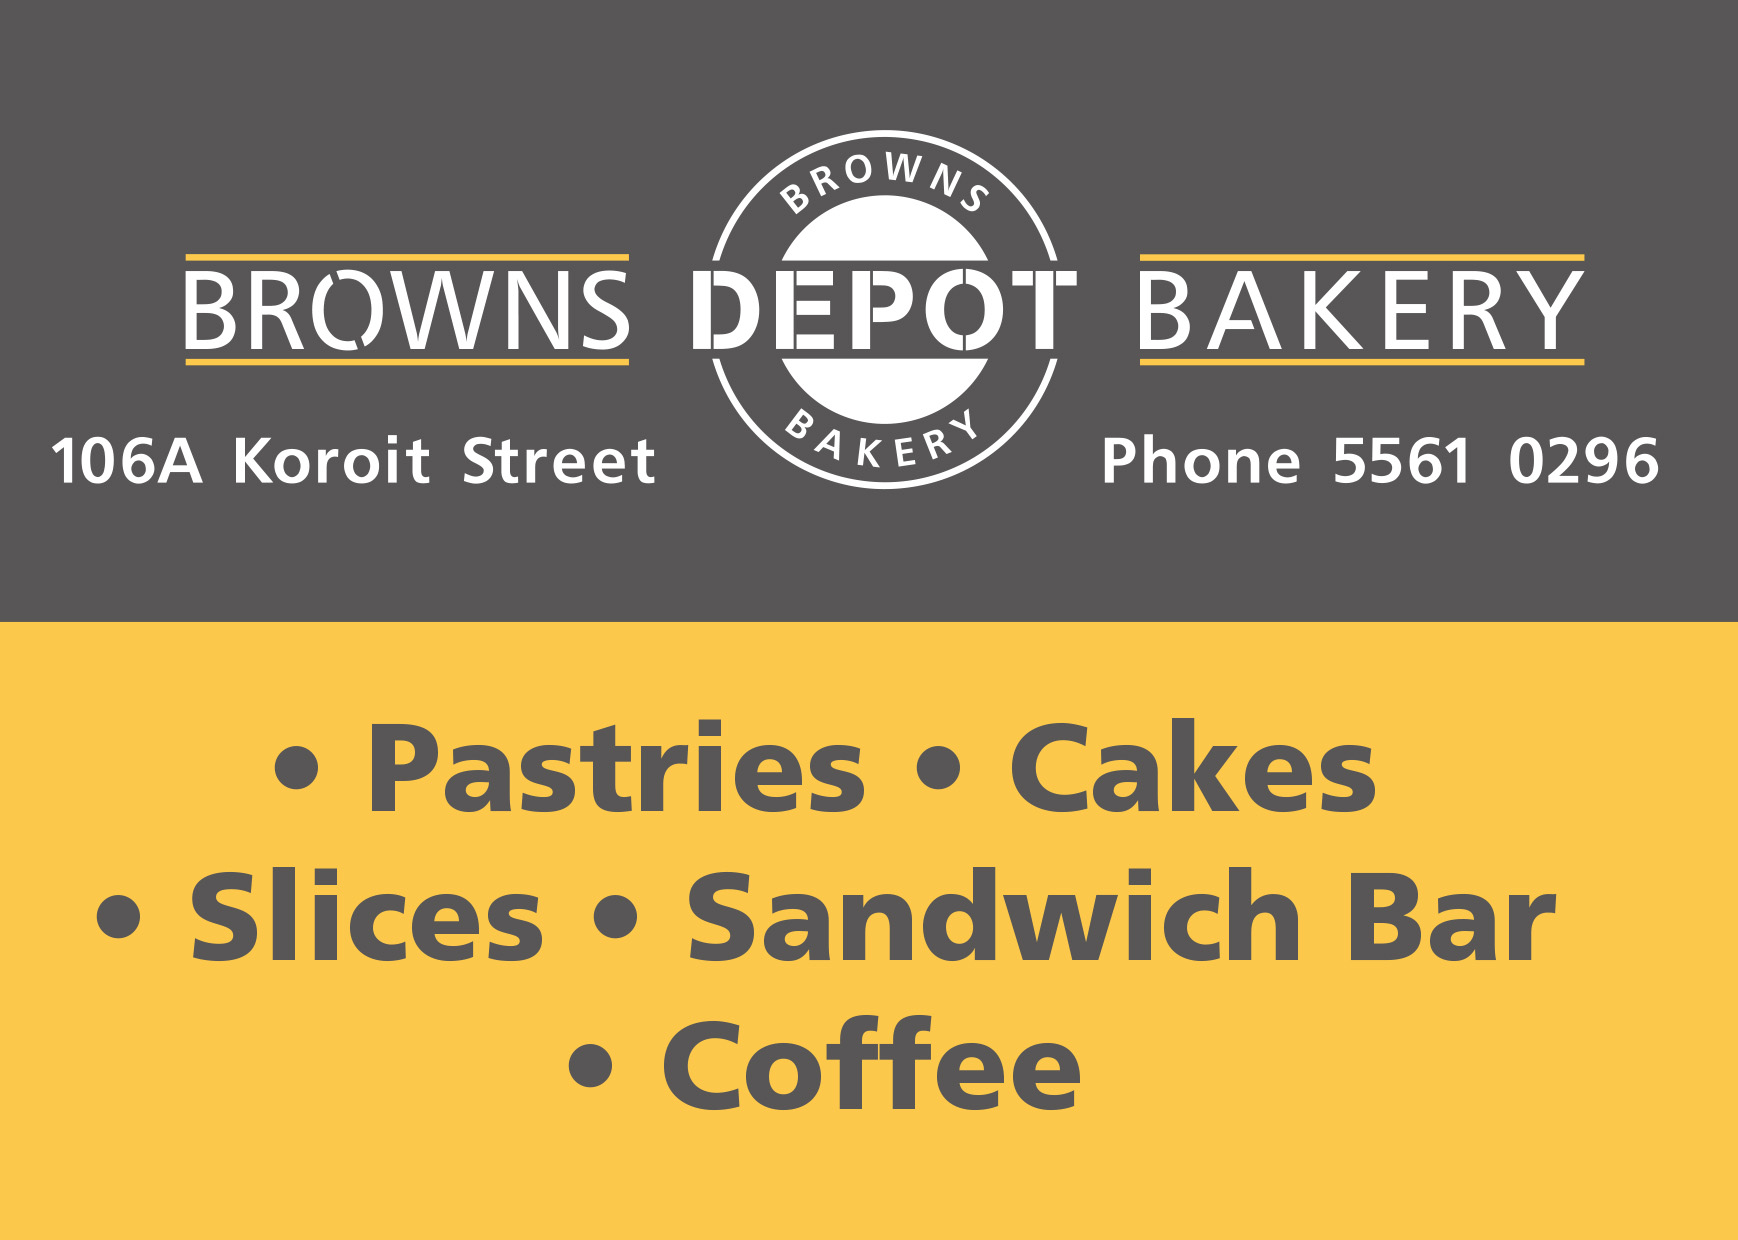 Browns Depot Bakery